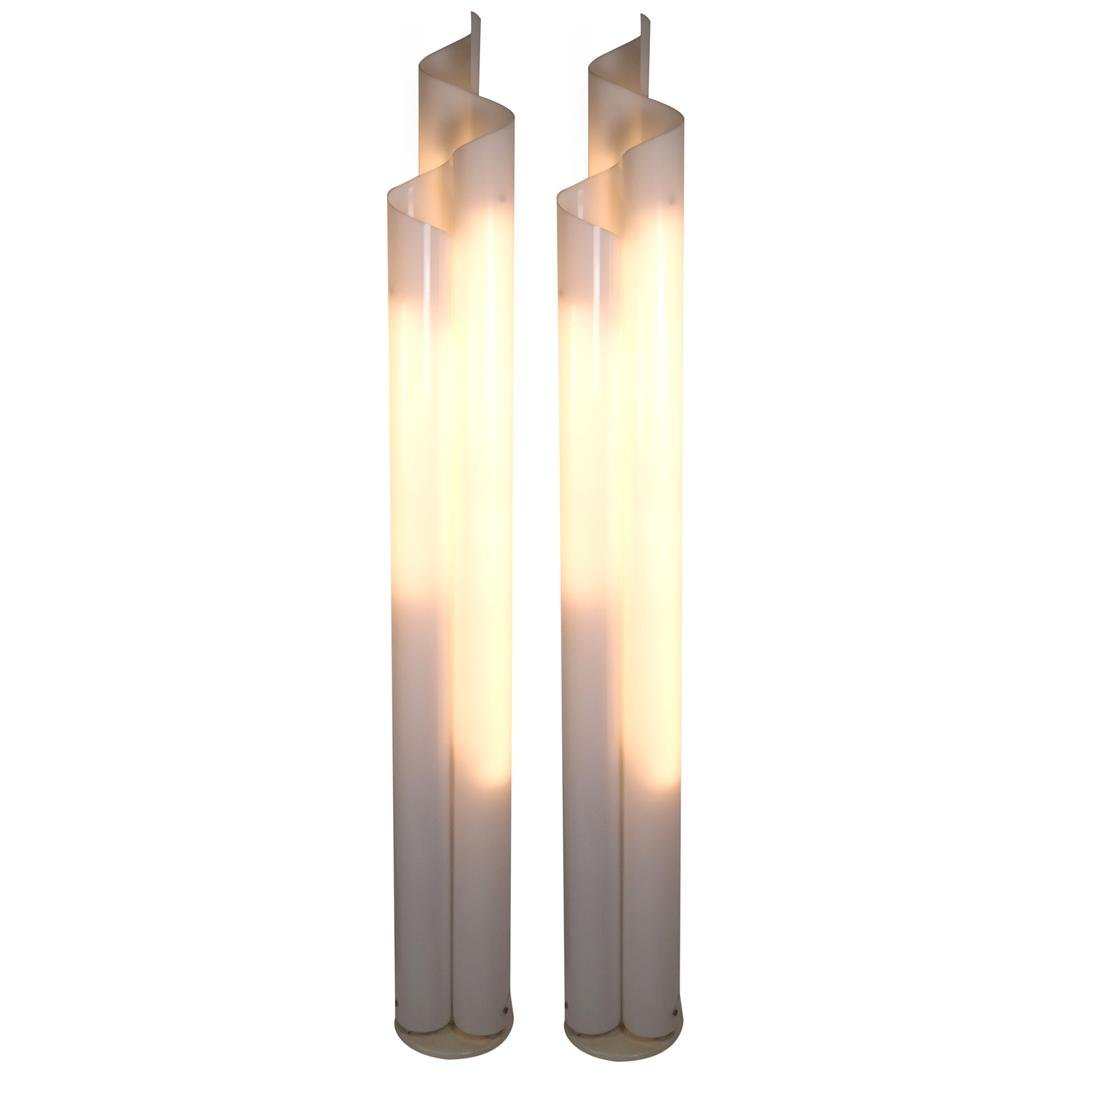 Pair of Modern Acrylic Floor Lamps